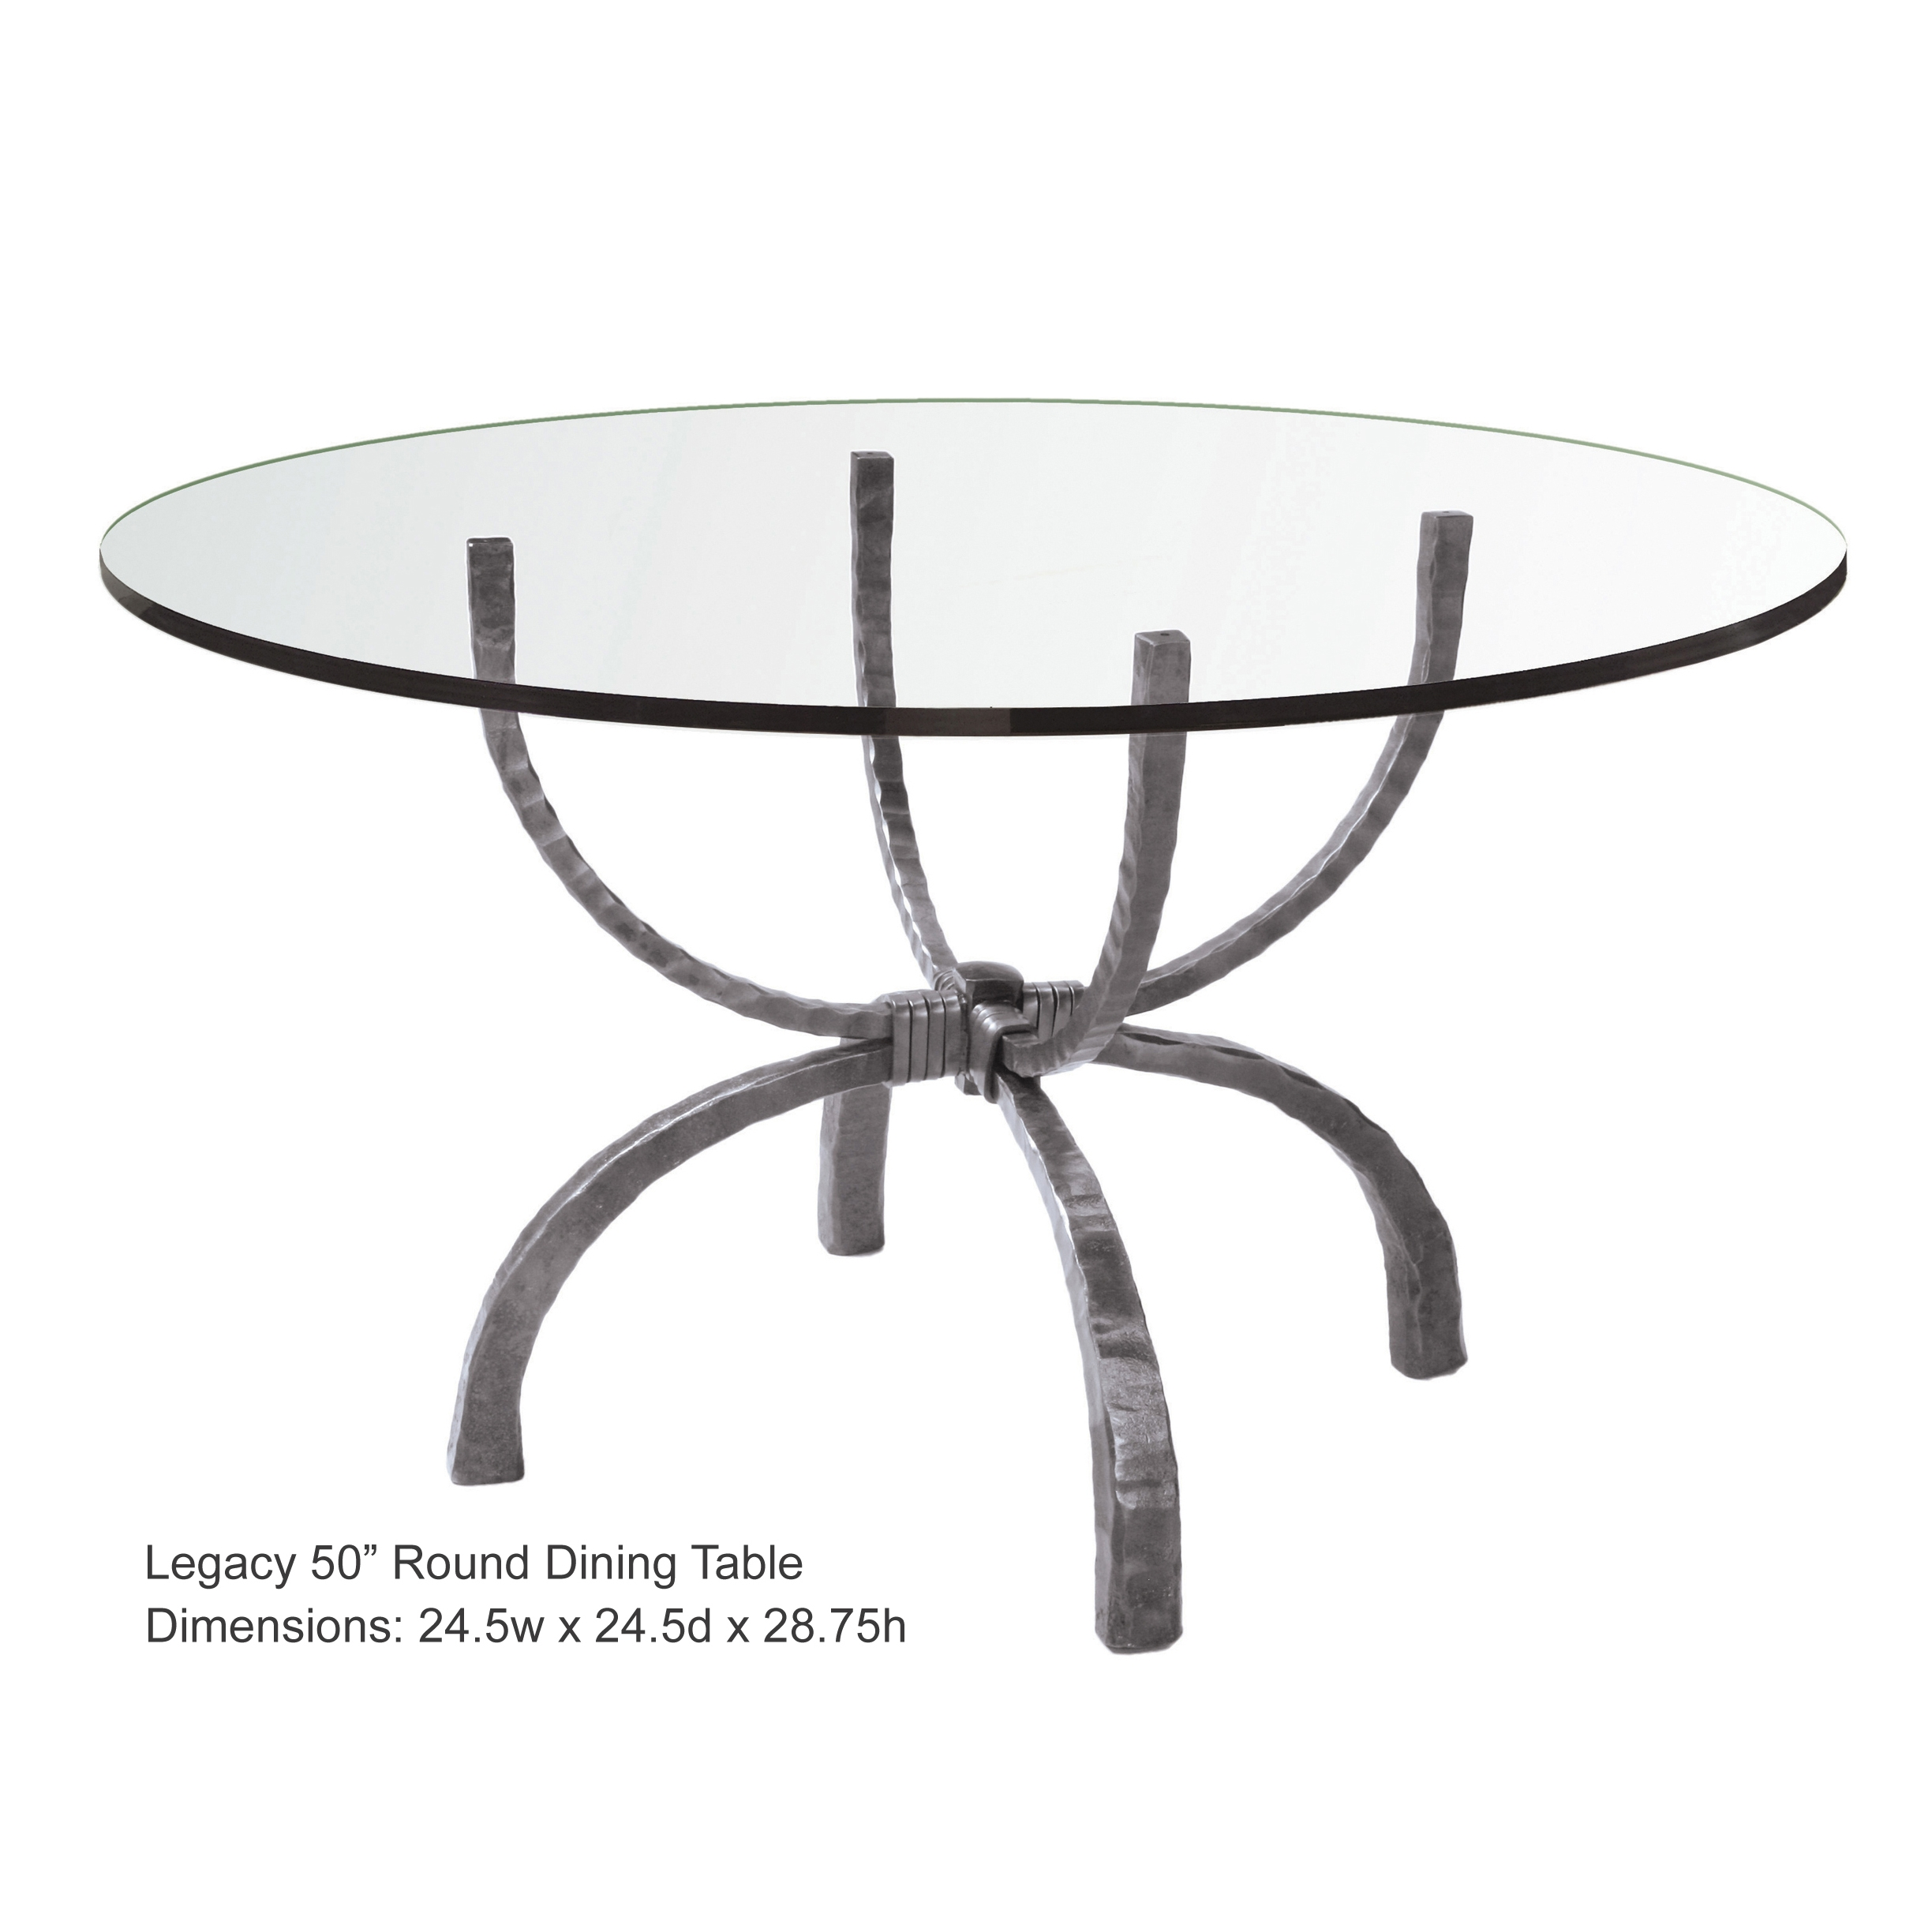 Dining Table Wrought Iron Dining Table : TWI CF T102 2 from mydiningtablehome.blogspot.com size 2448 x 2448 jpeg 695kB